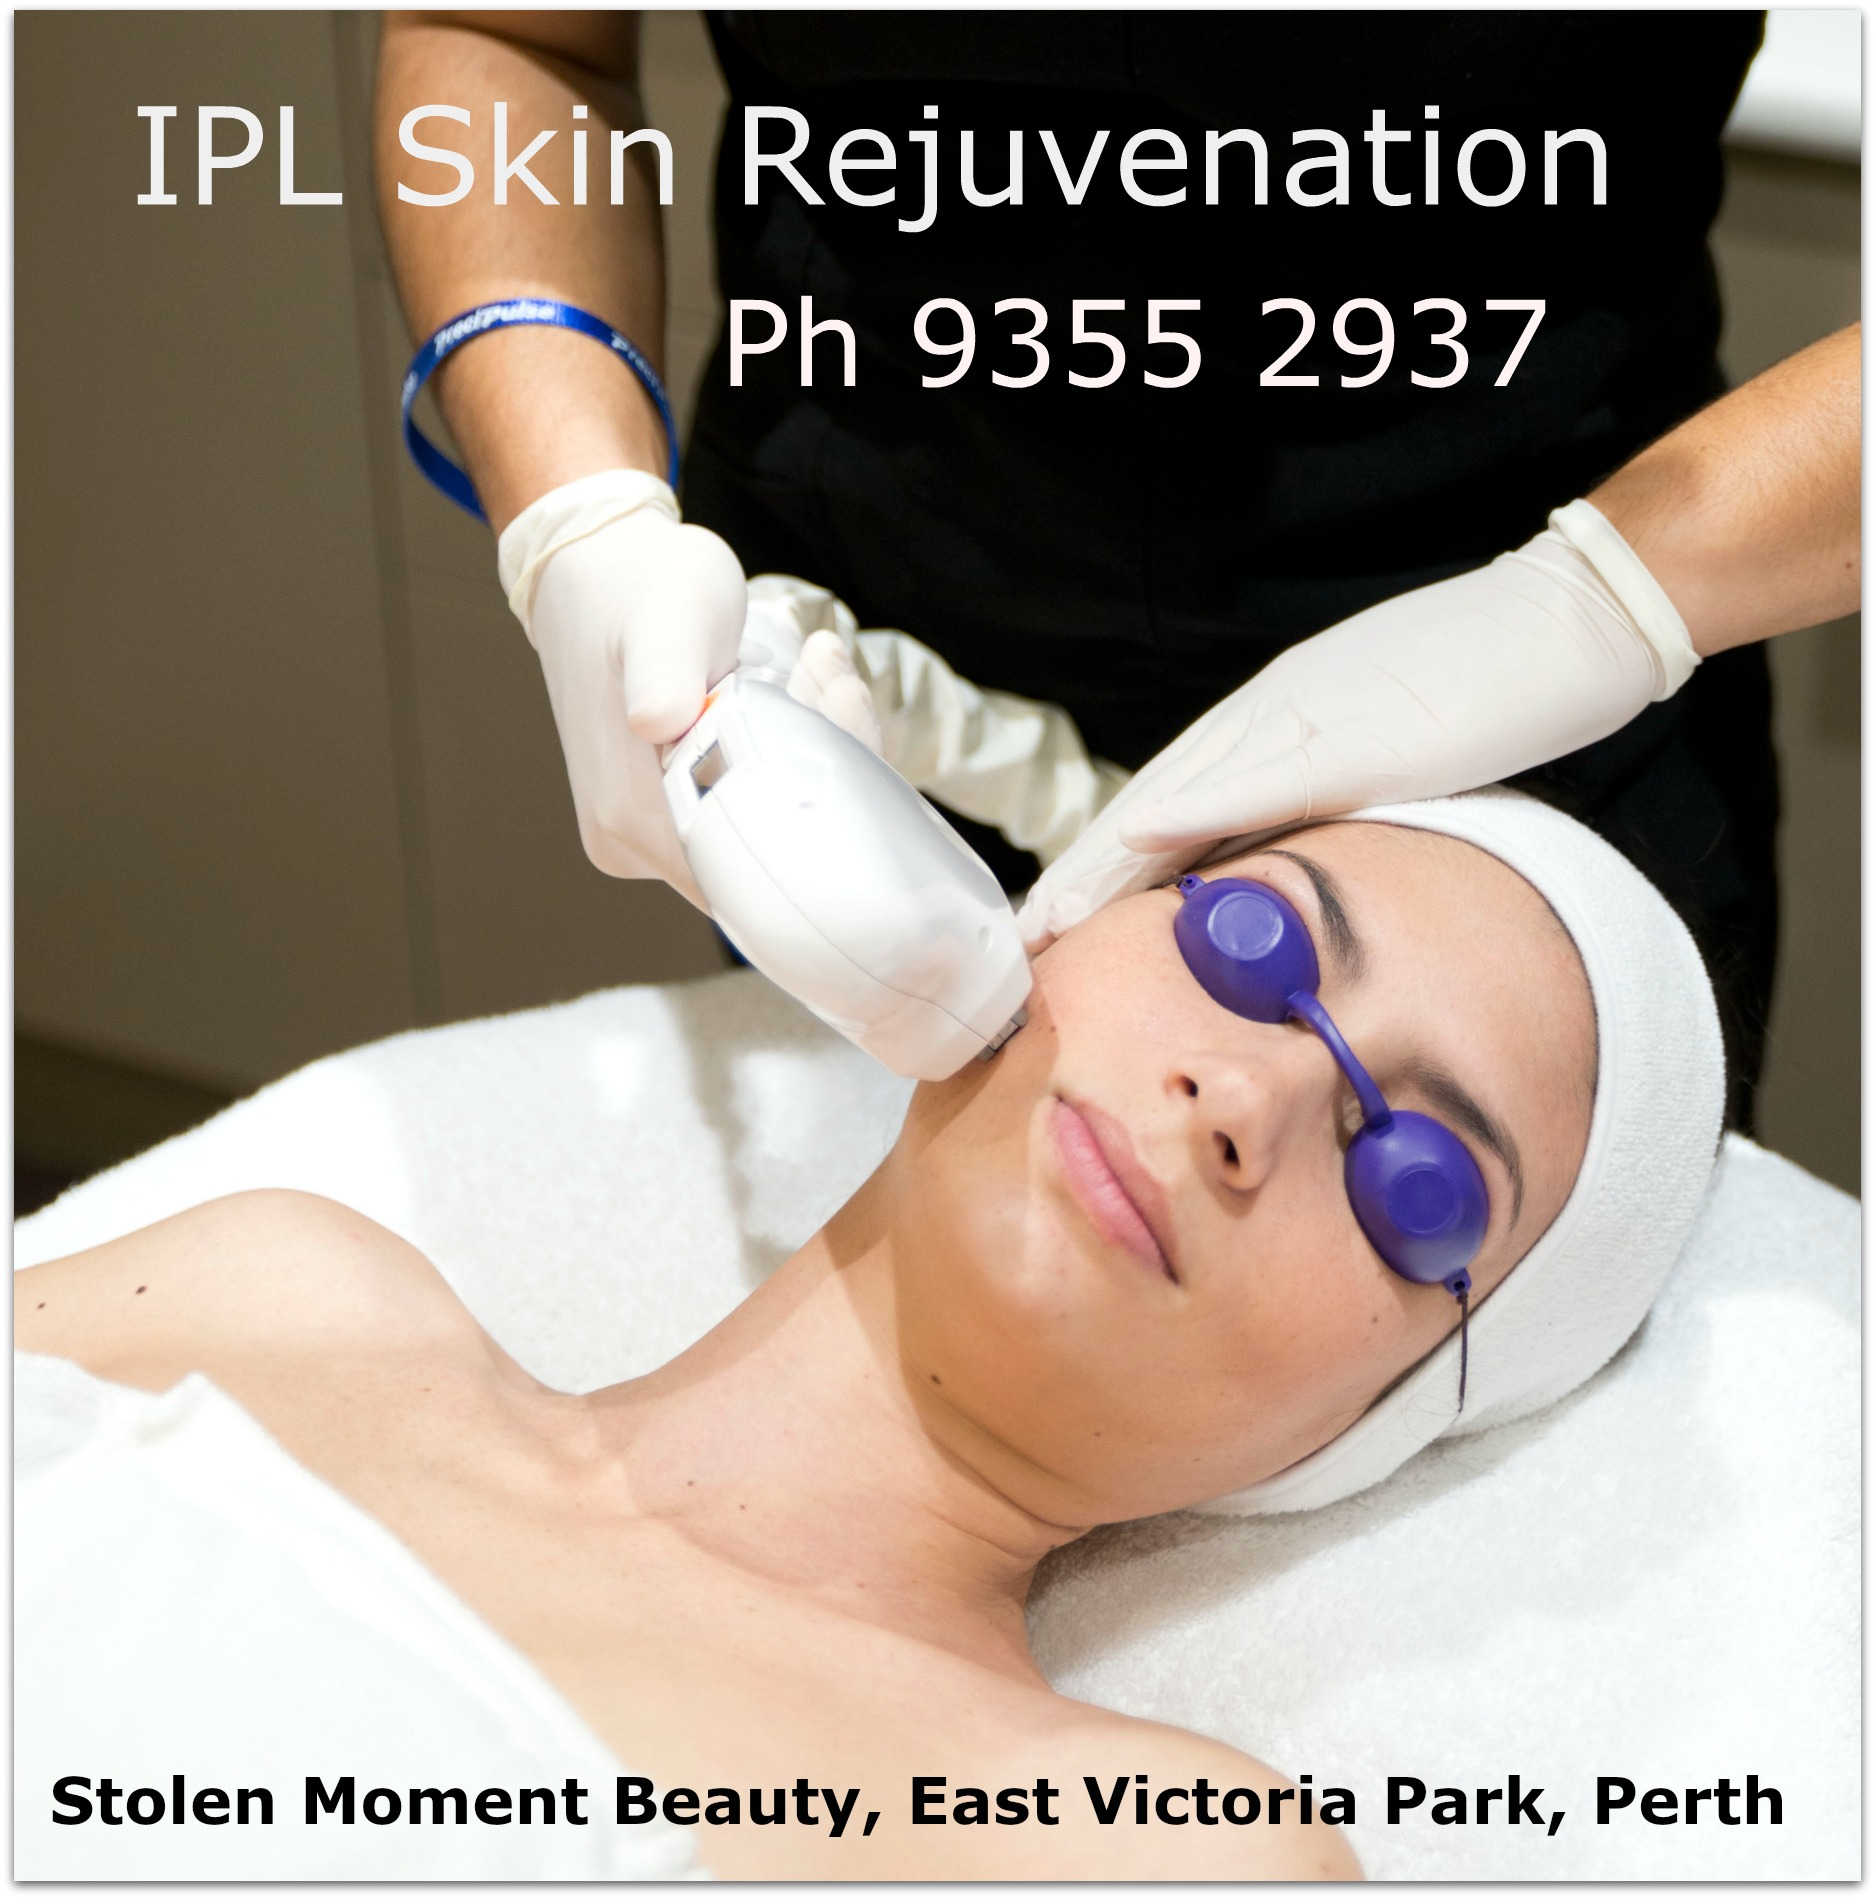 IPL Skin rejuvenation Perth